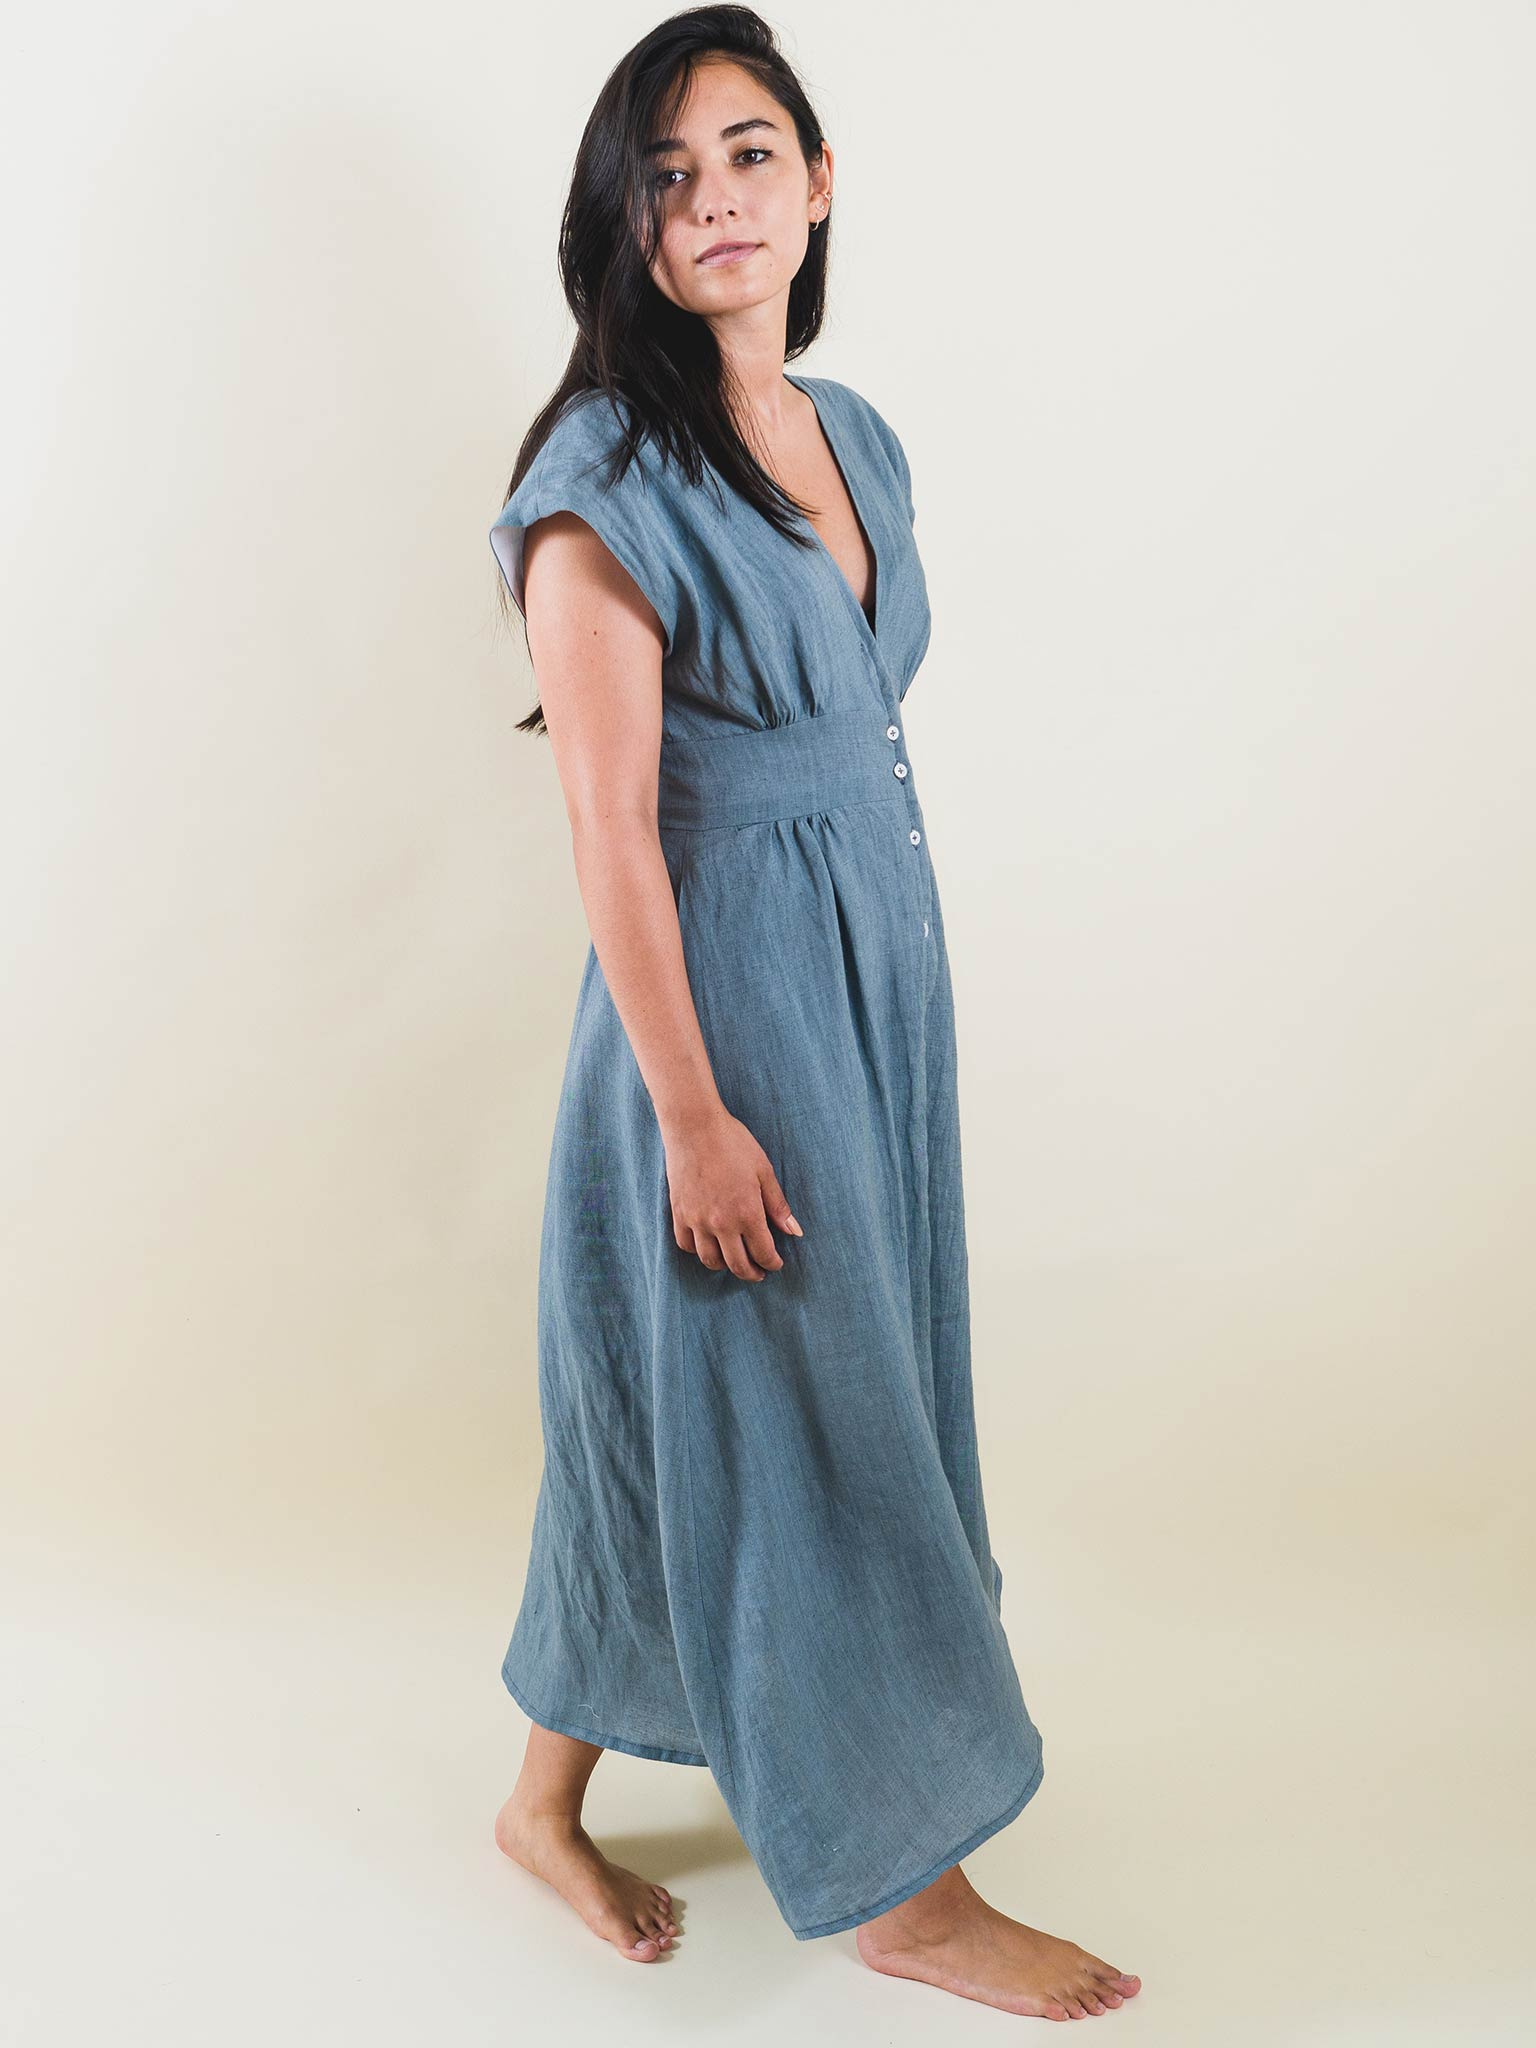 Catherine Dress in Chambray Linen